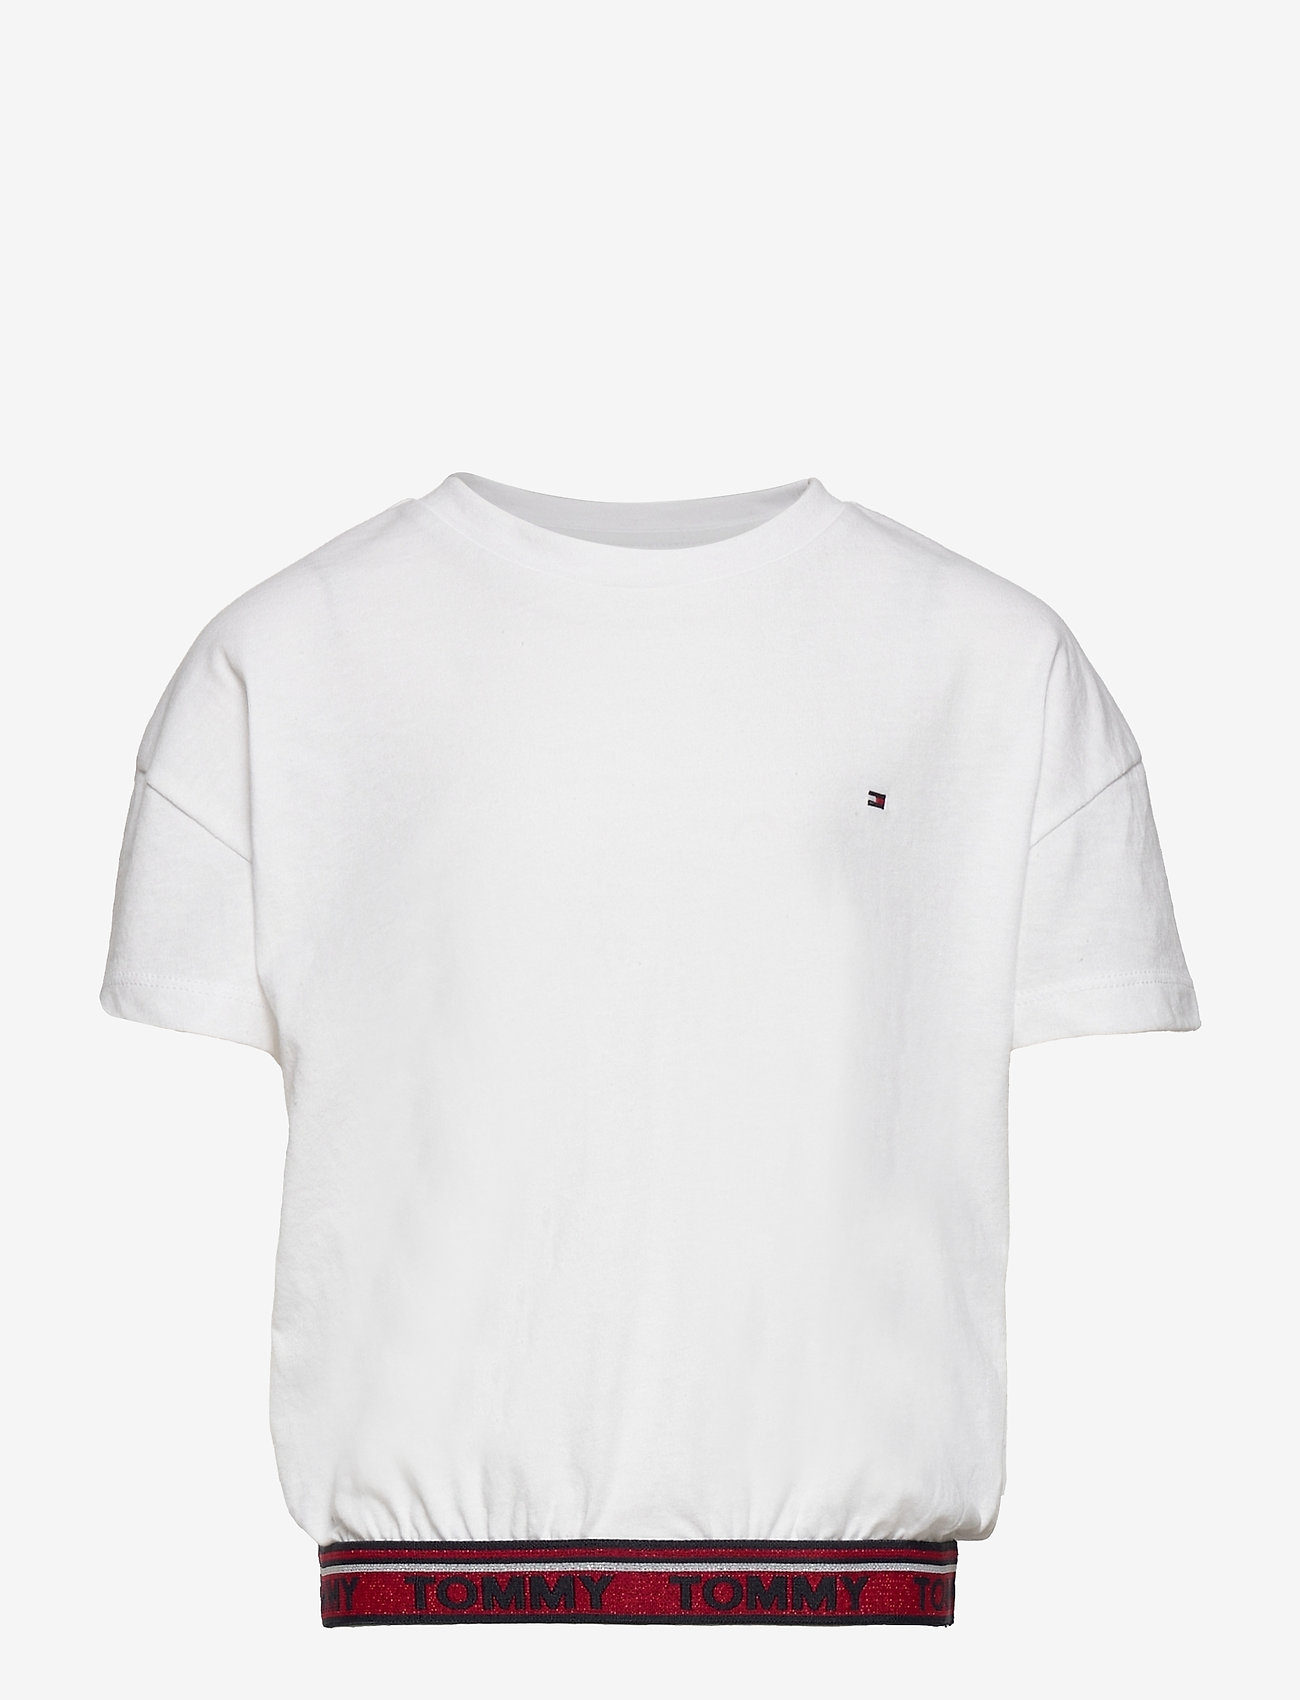 Tommy Hilfiger - TOMMY LUREX RIB  TOP S/S - plain short-sleeved t-shirt - white - 0